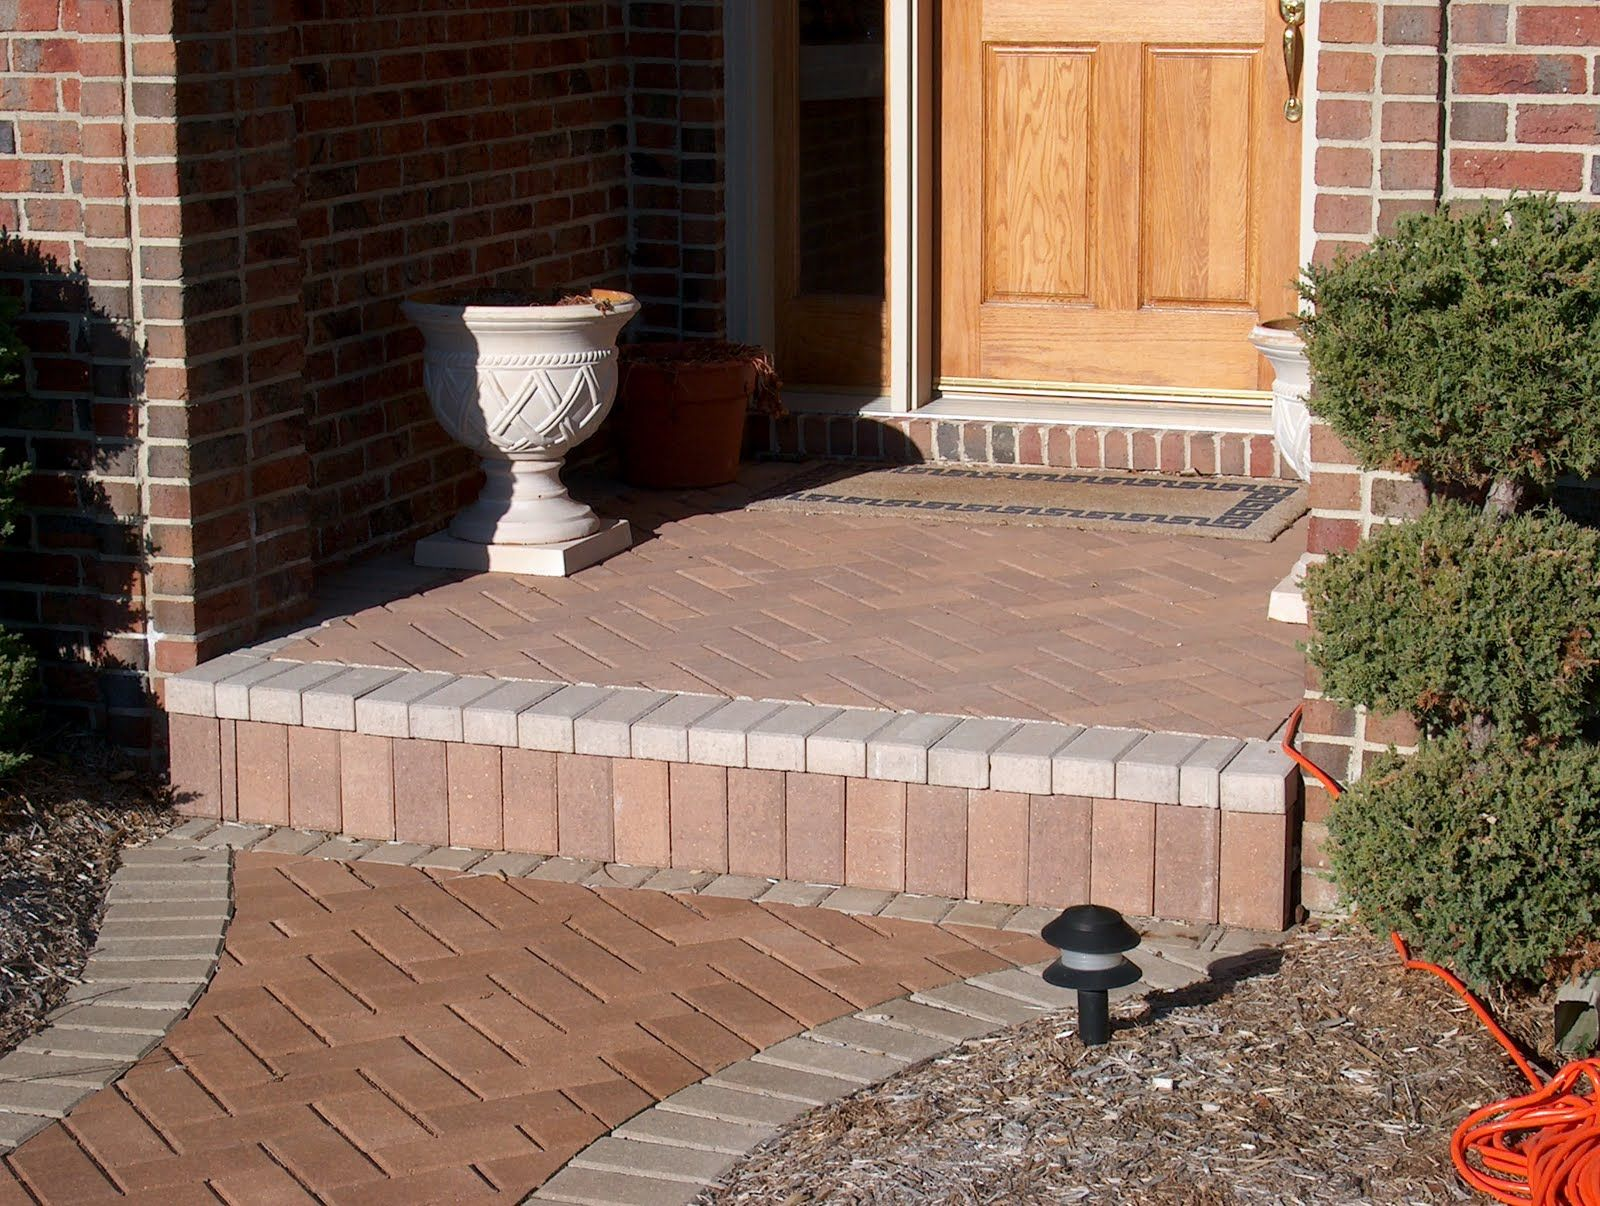 Best Brick Paver Porch And Steps Total Porch Replacement 400 x 300